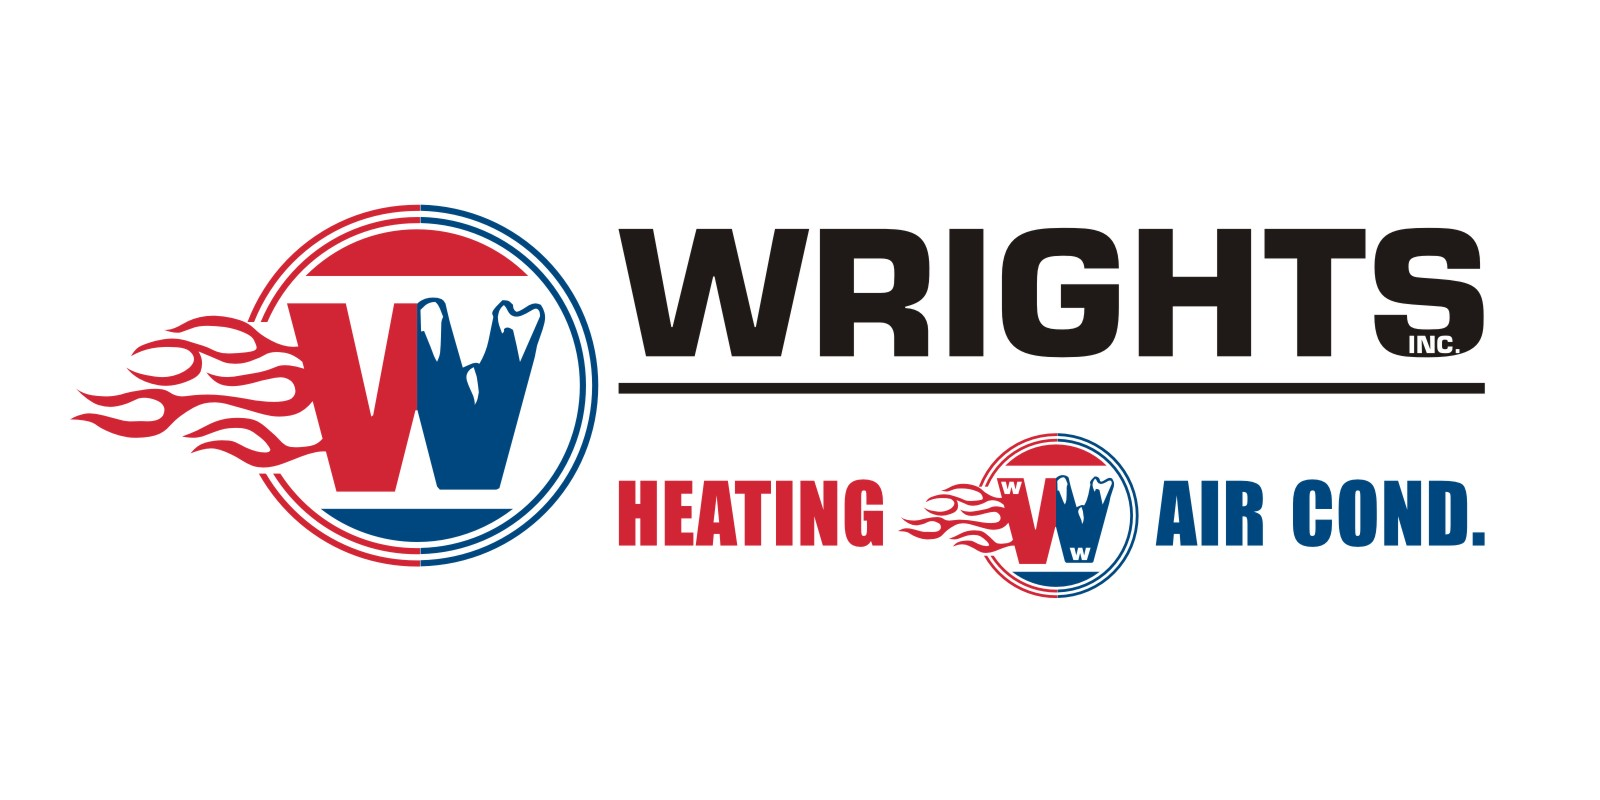 Wrights Heating And Air Conditioning